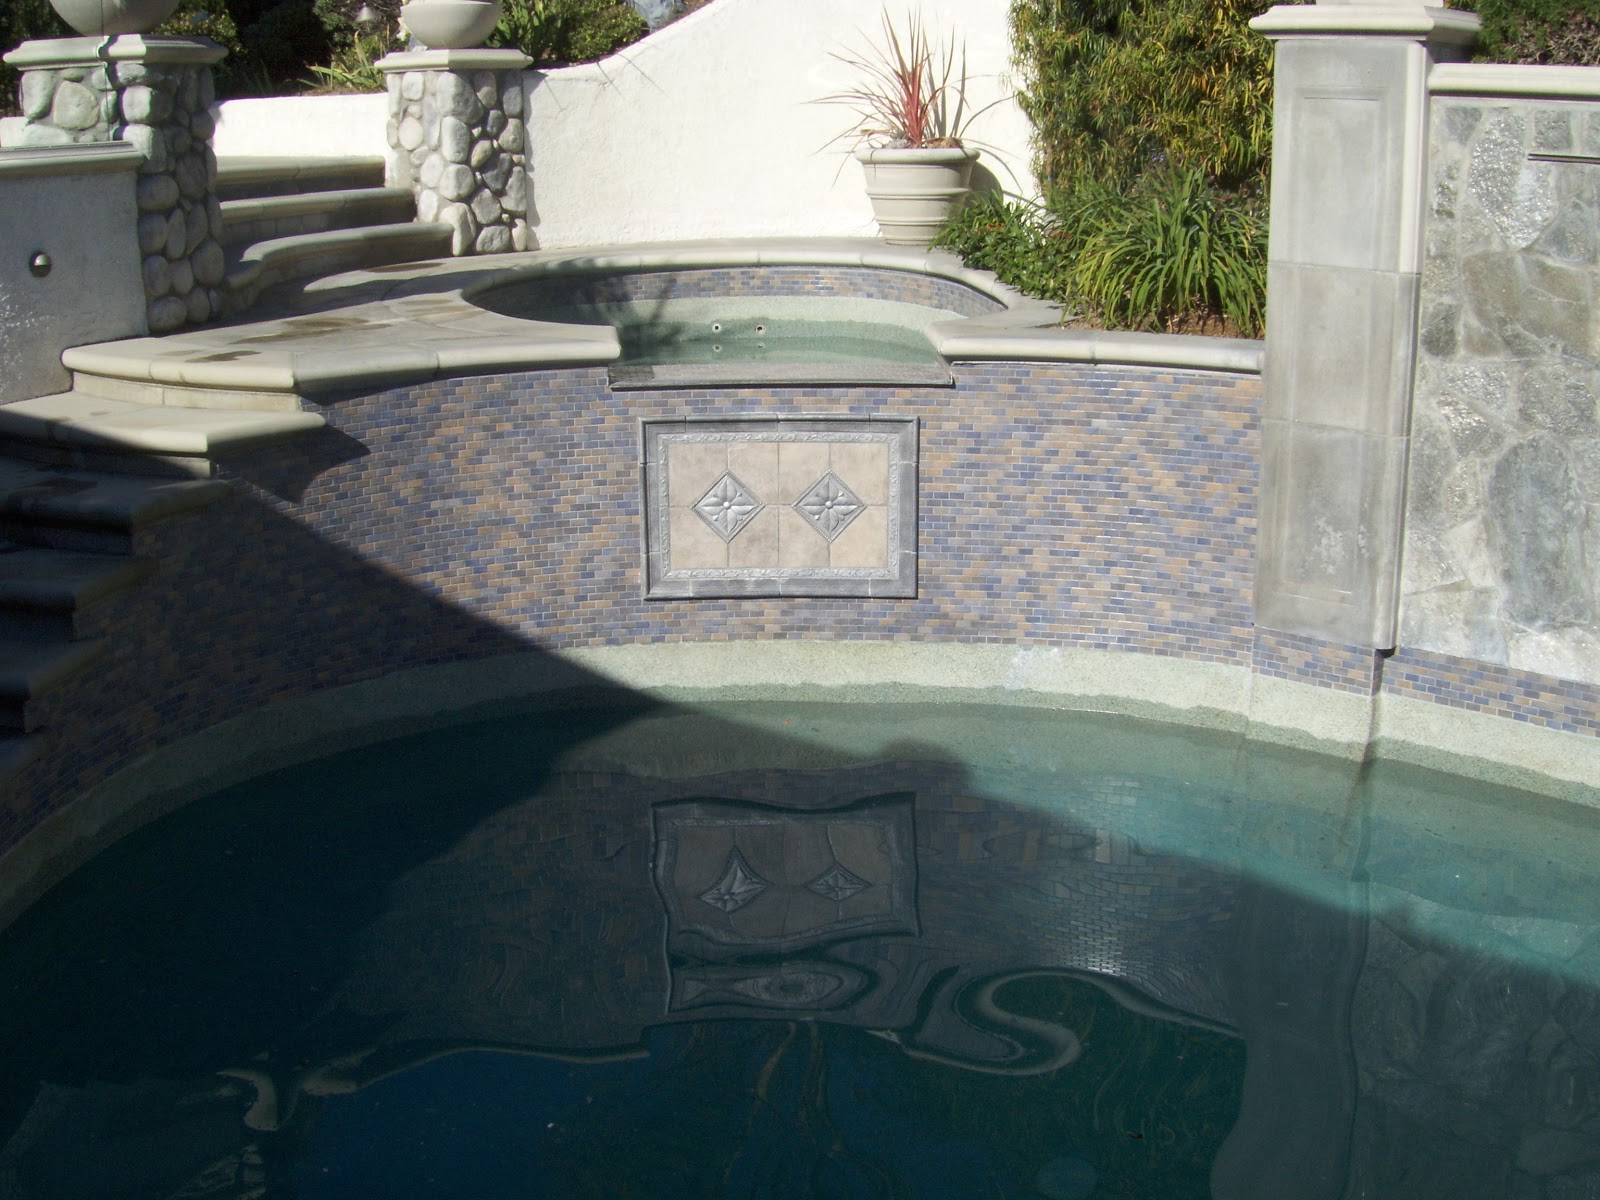 Oc La Palm Springs Riverside Pool Tile Cleaning And Repair Corona Pool Tile Cleaning 951 468 0093